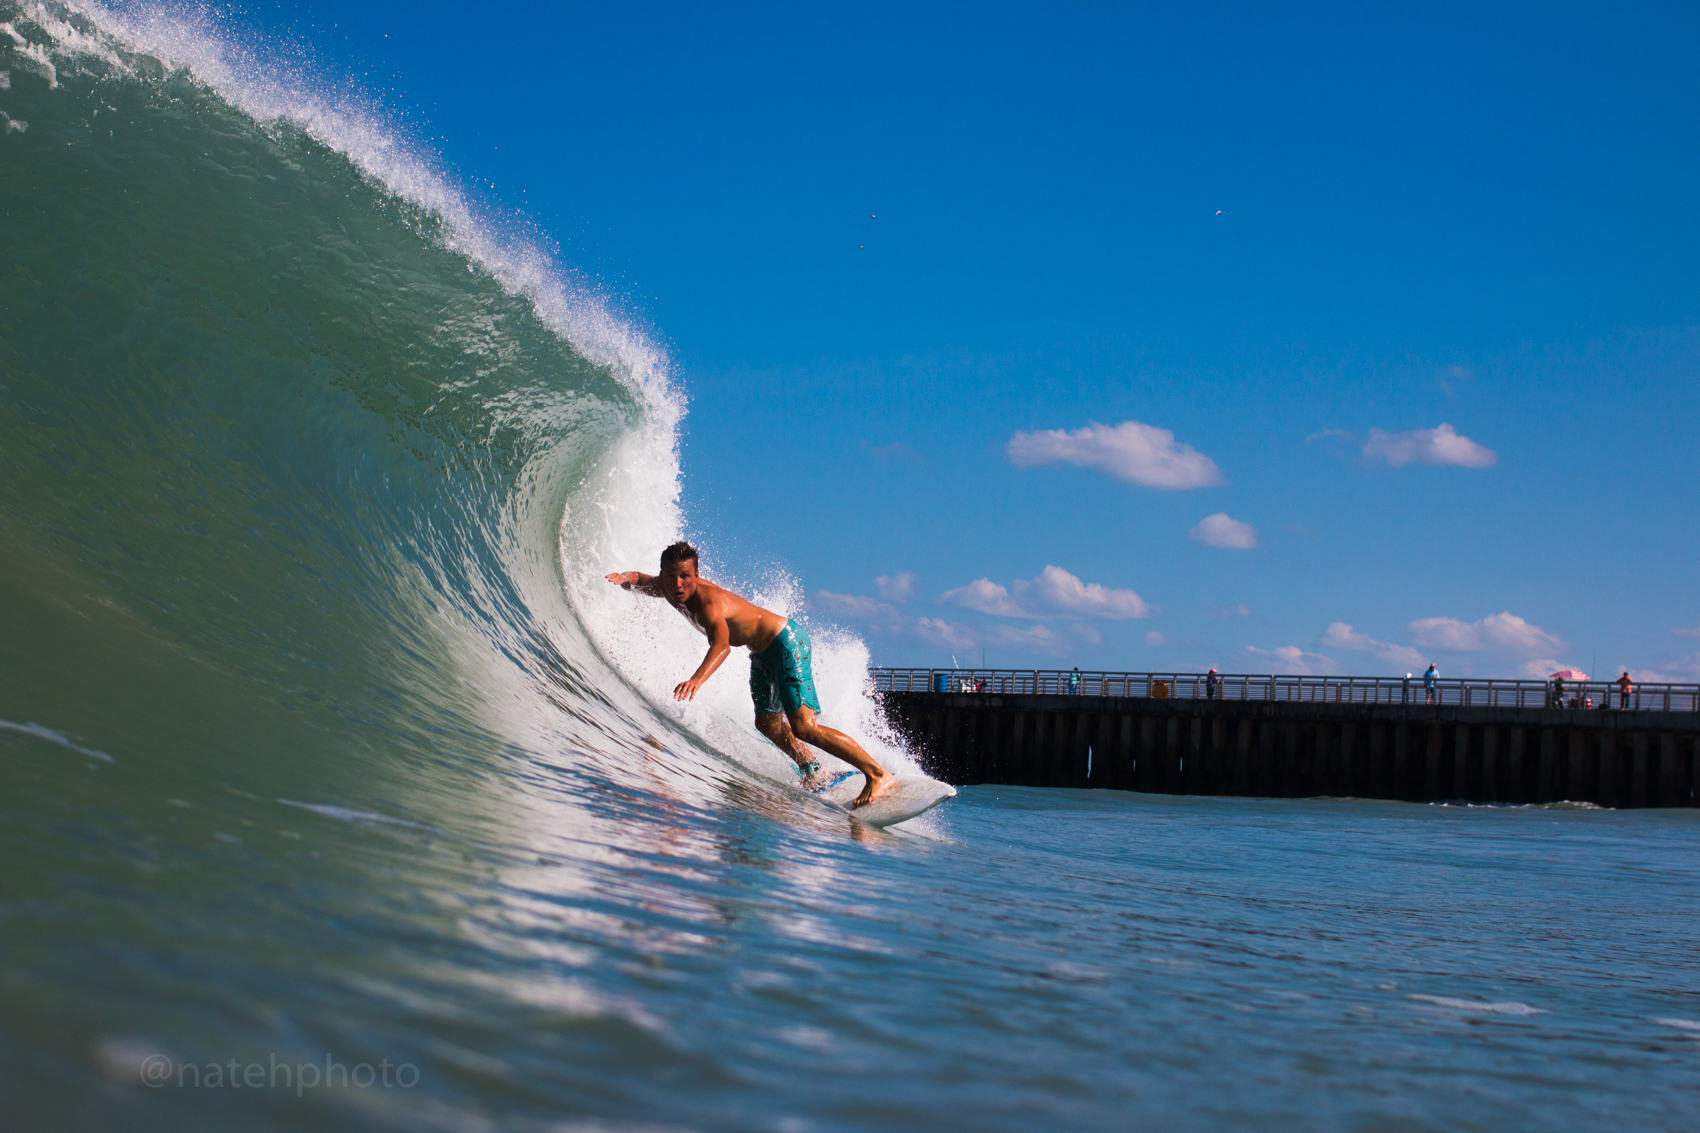 Chauncey Robinson Surfing at Sebastian Inlet, FL. Photography by Nathaniel Harrington